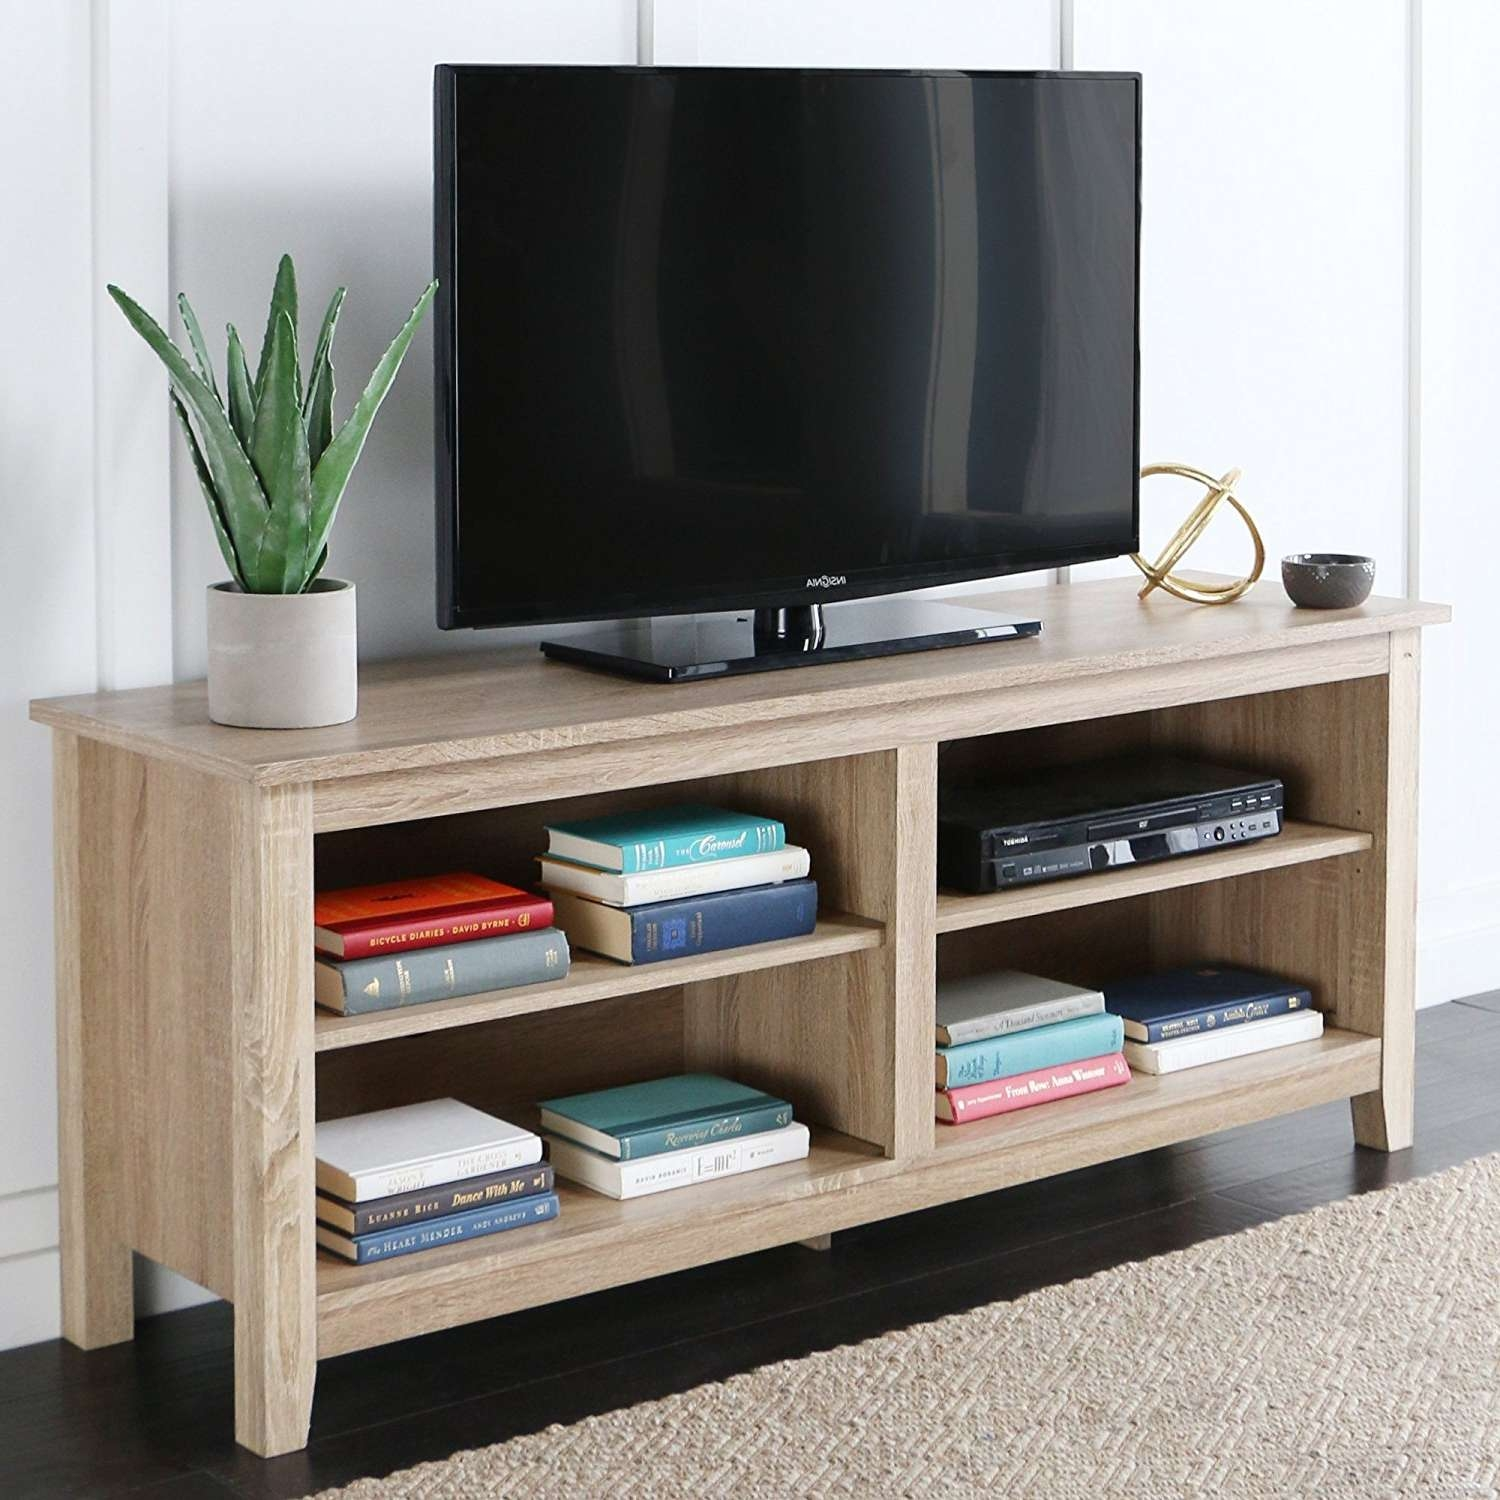 Tv Stand : 241d33e0c79d 1 Beautifulure Tv Stand Photos With Tv Cabinets With Storage (View 5 of 20)